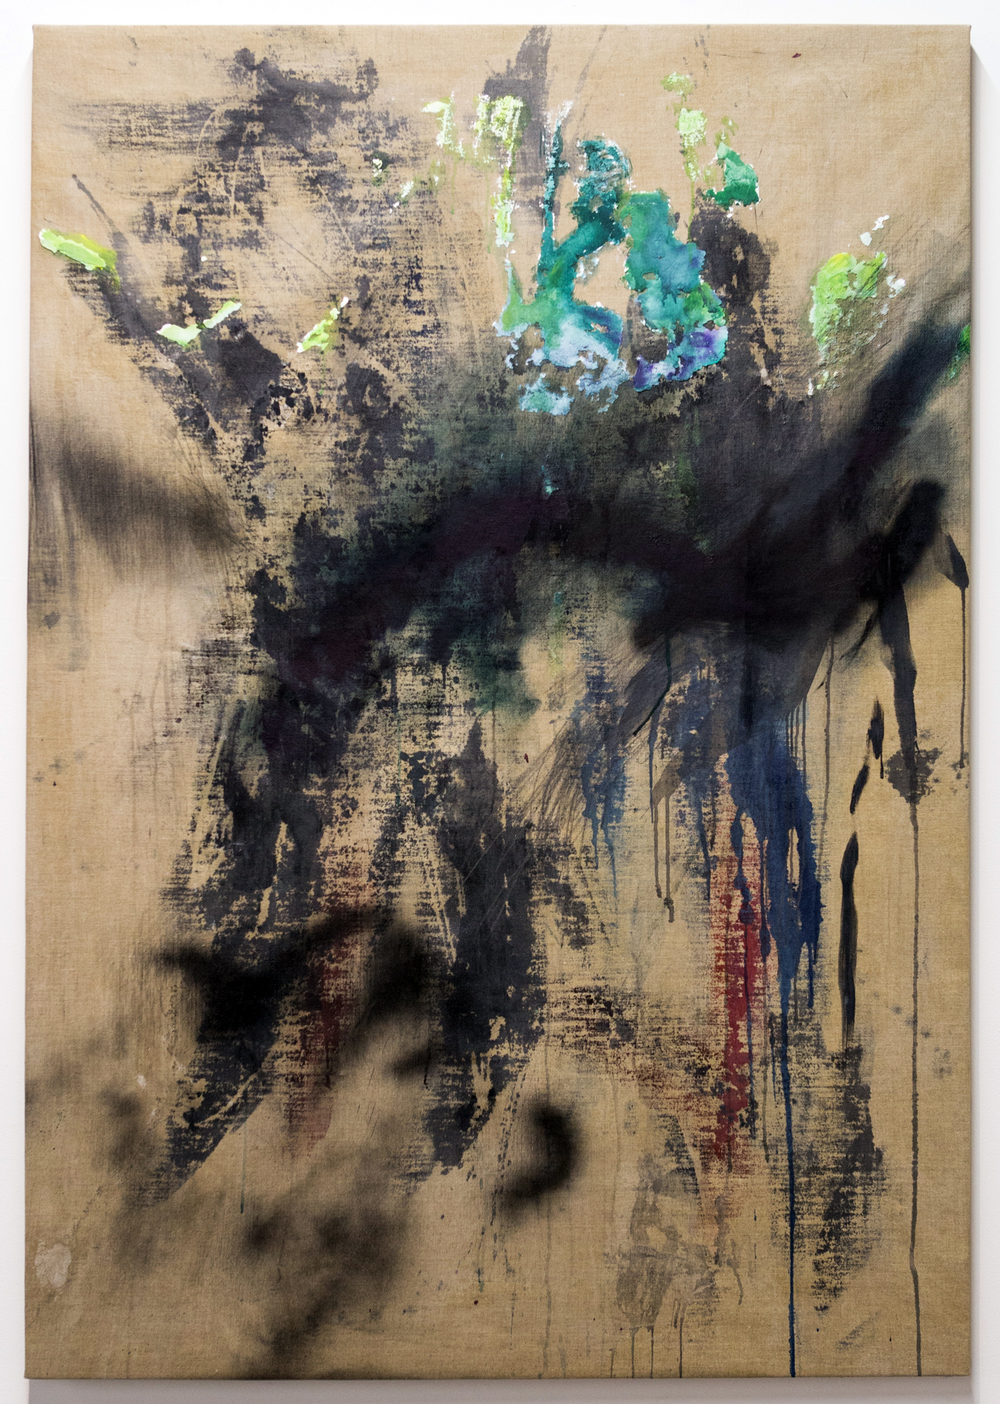 MLSL_08_Roxy  , 2015  Oil, acrylic, lead and spray paint on linen  67 x 46.5 in (170.18 x 118.11 cm)